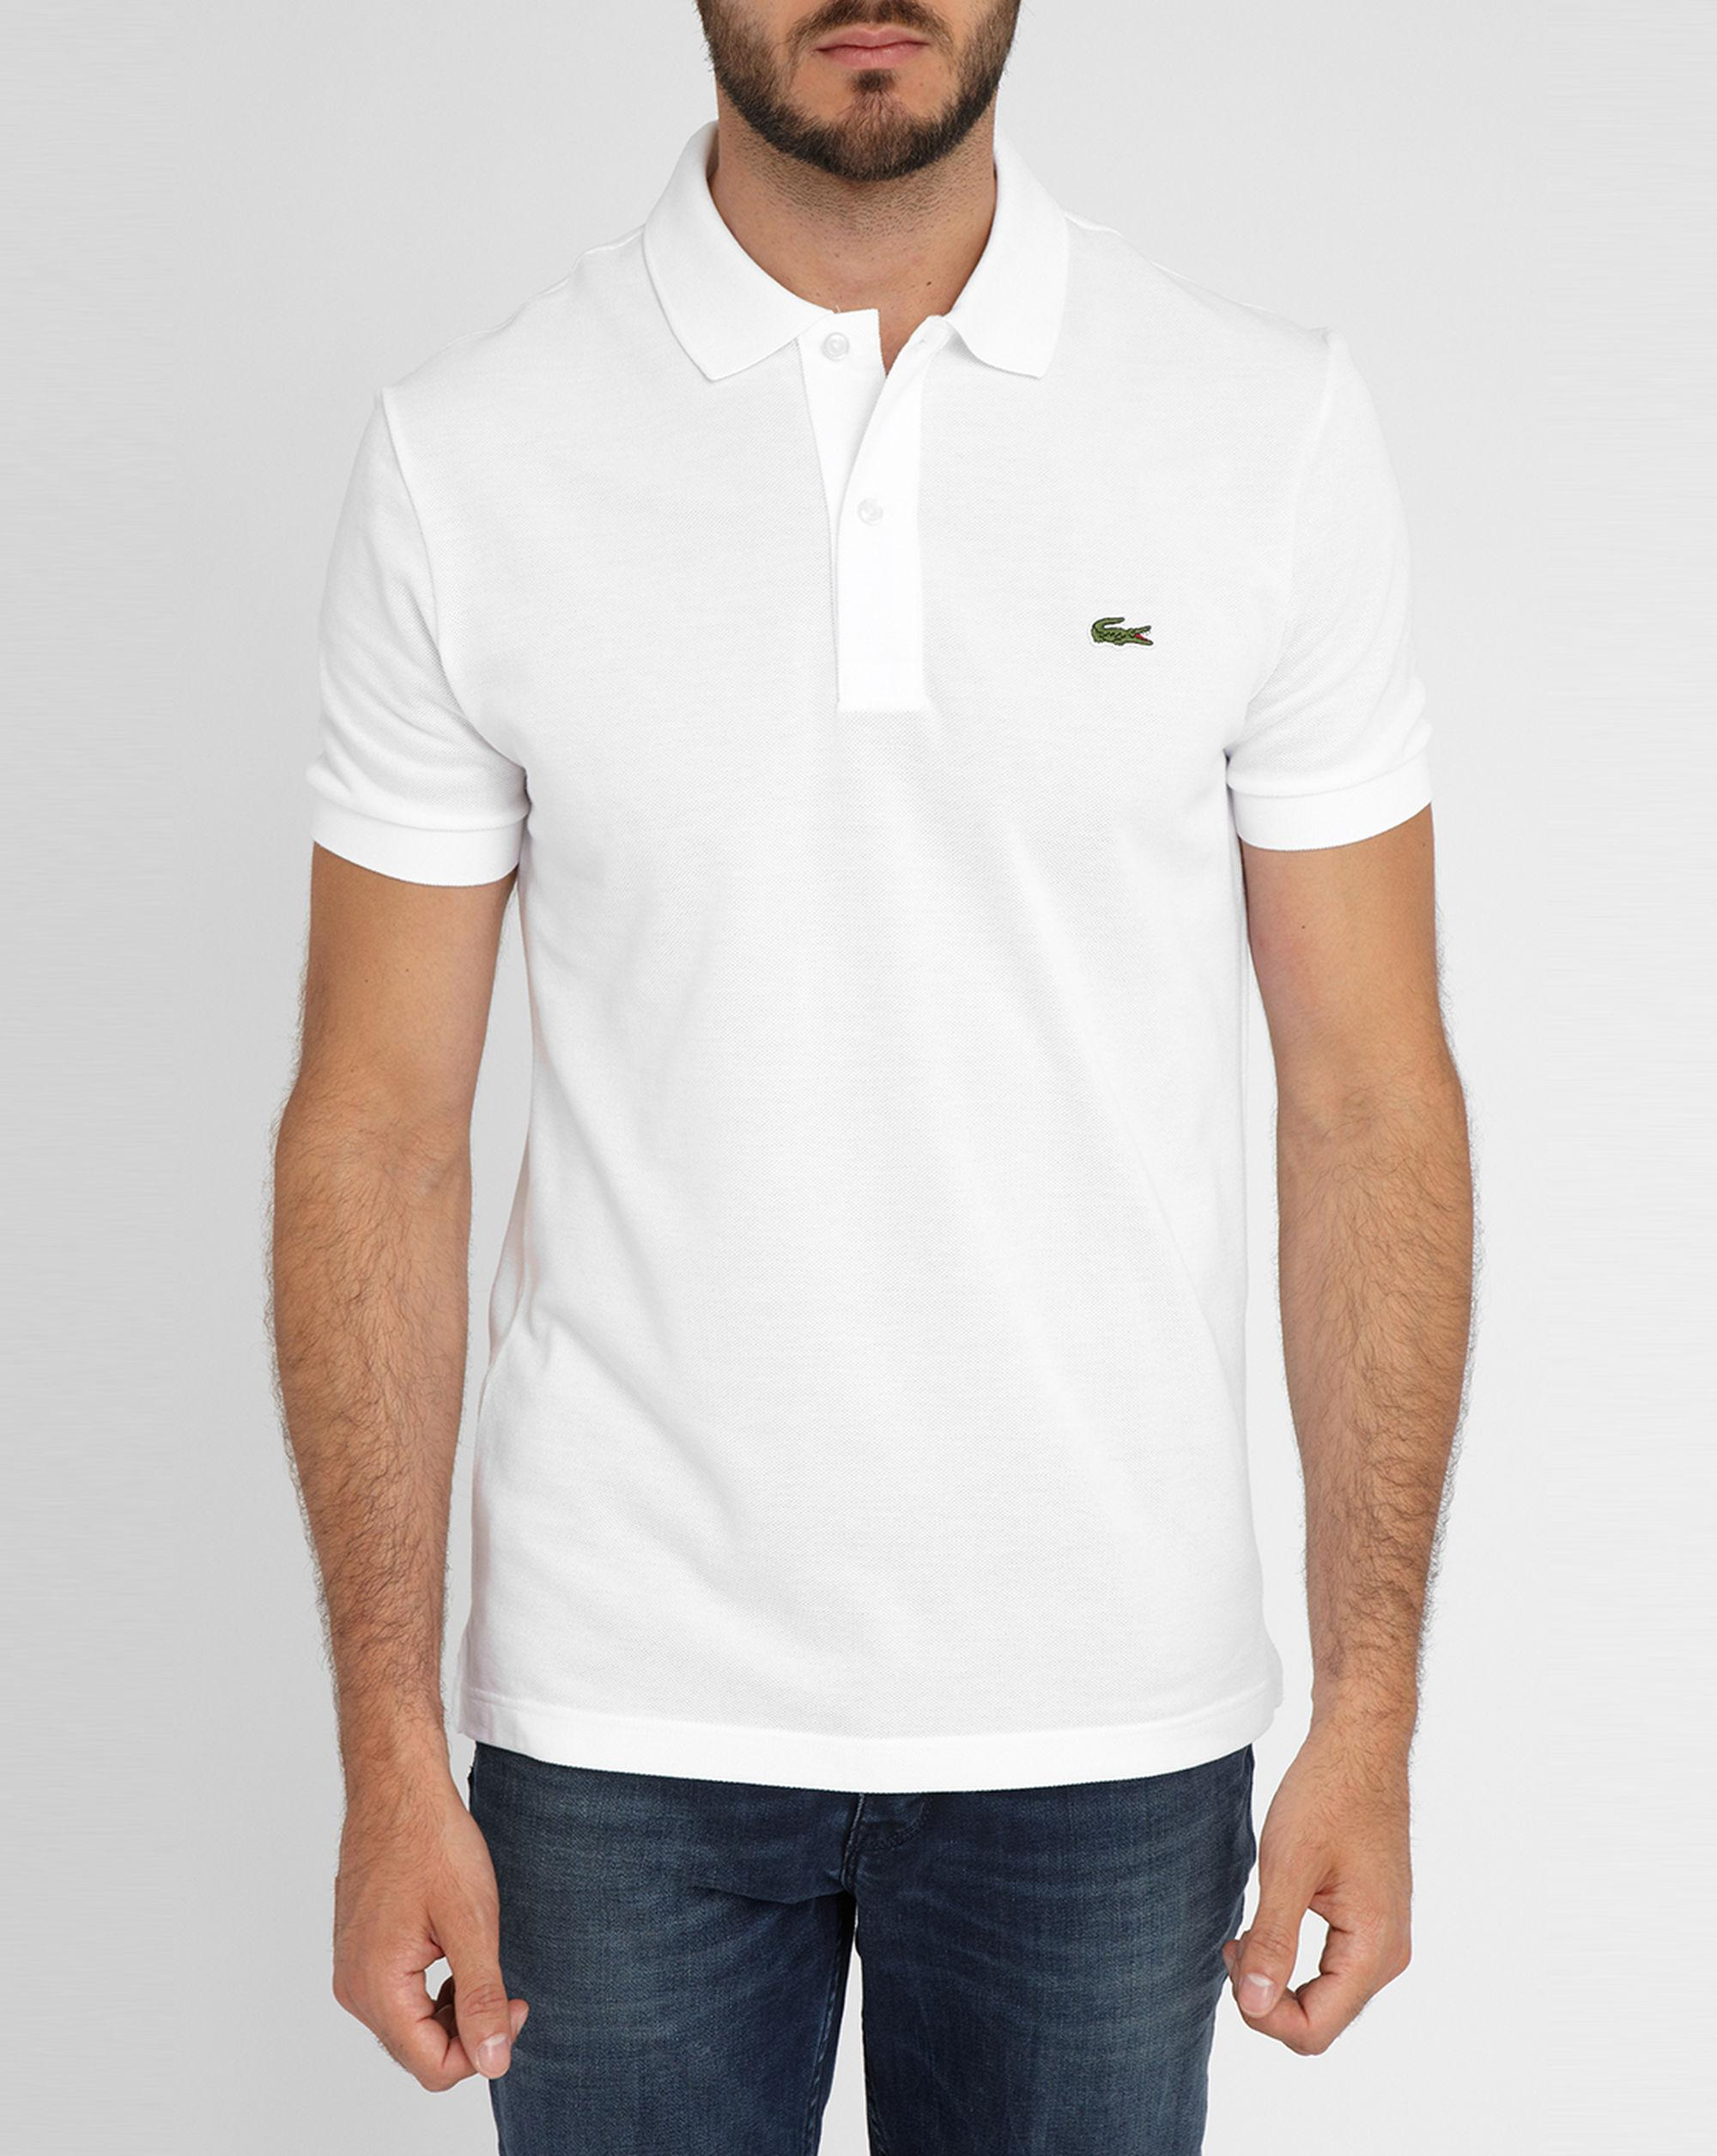 lacoste white logo short sleeve polo shirt in white for. Black Bedroom Furniture Sets. Home Design Ideas